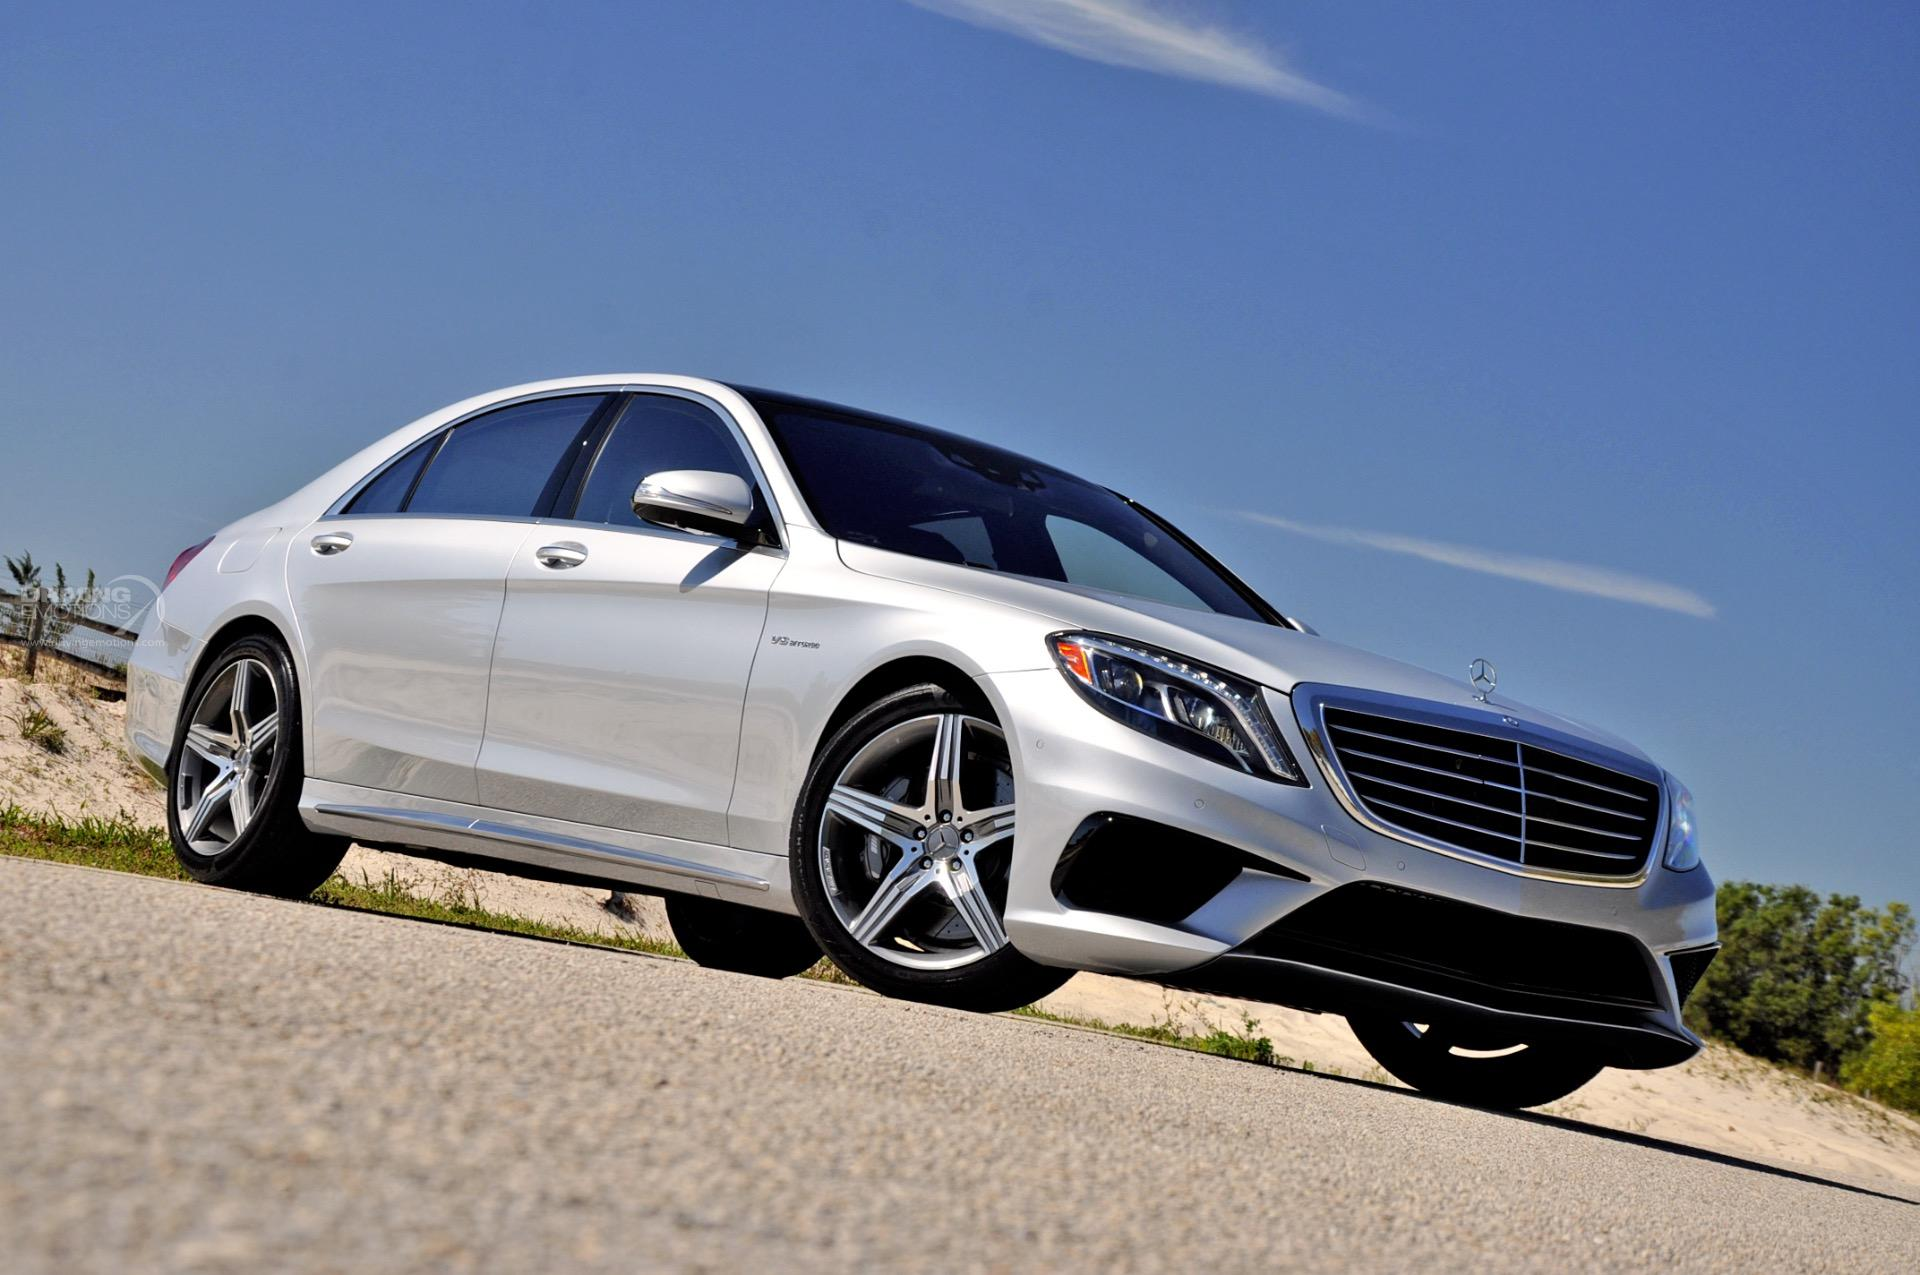 2014 mercedes benz s63 amg s63 amg stock 5858 for sale for Mercedes benz s63 2014